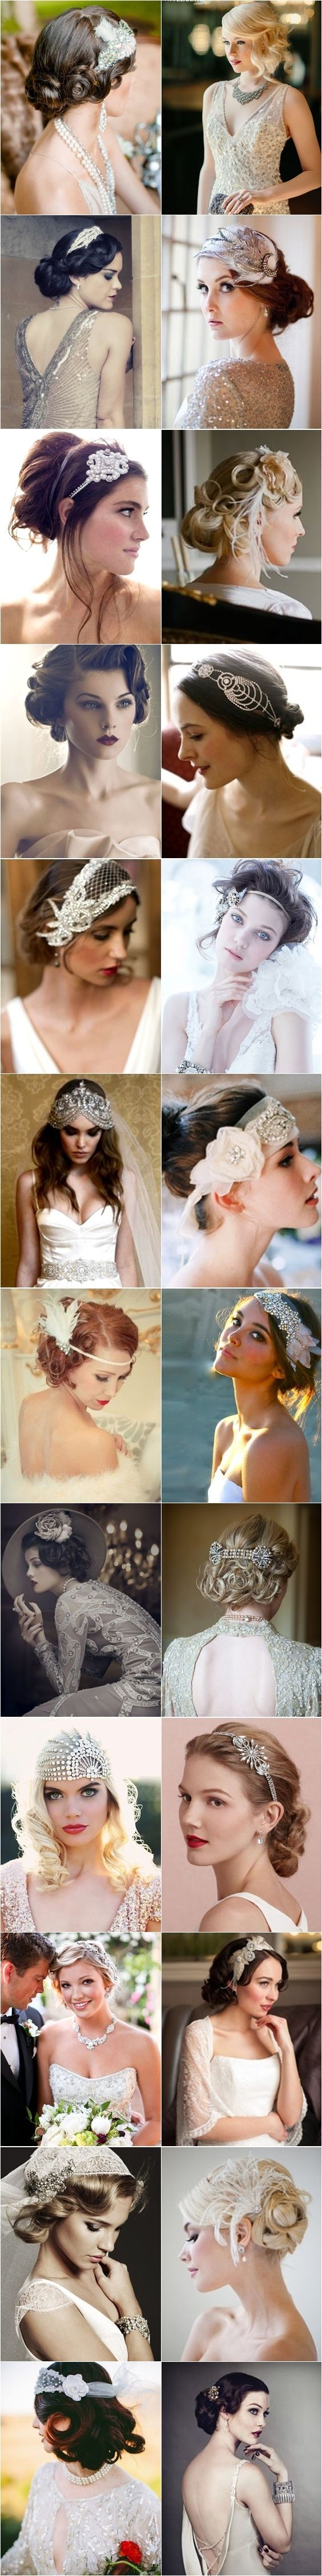 1920's themed wedding decorations  Inspírate con BodaTotal uc  accesorios boda  Pinterest  Gatsby